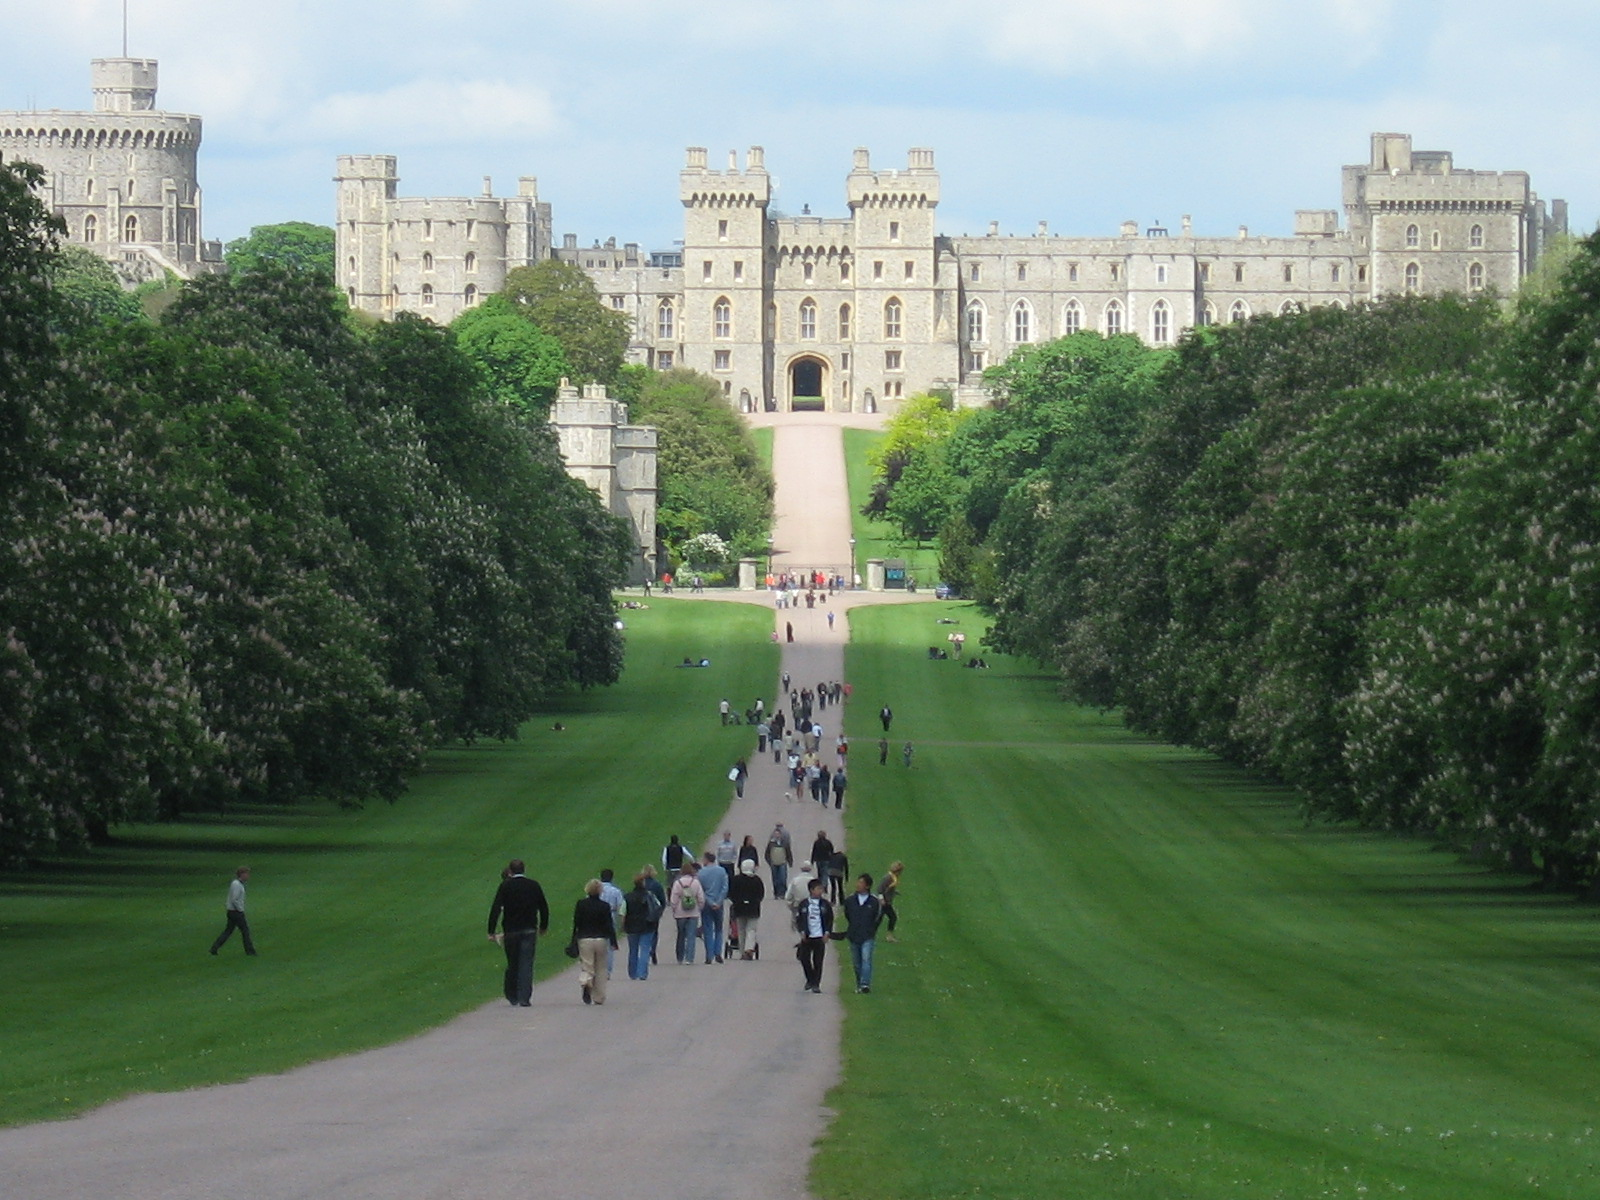 Best Castles In England: Windsor Castle